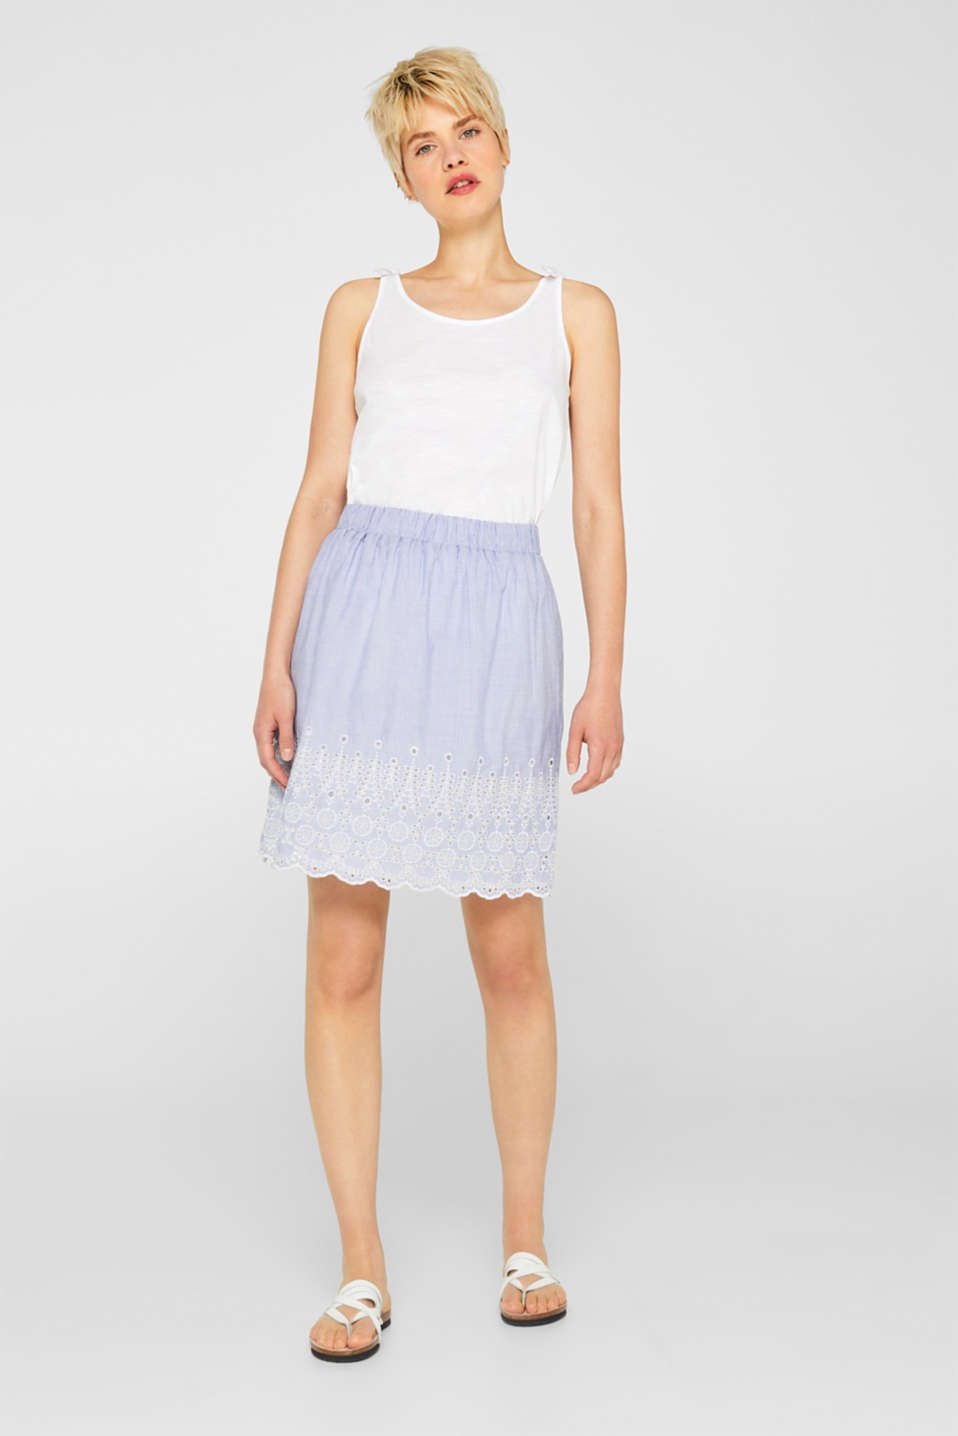 Broderie anglaise detail skirt, 100% cotton, LIGHT BLUE, detail image number 0